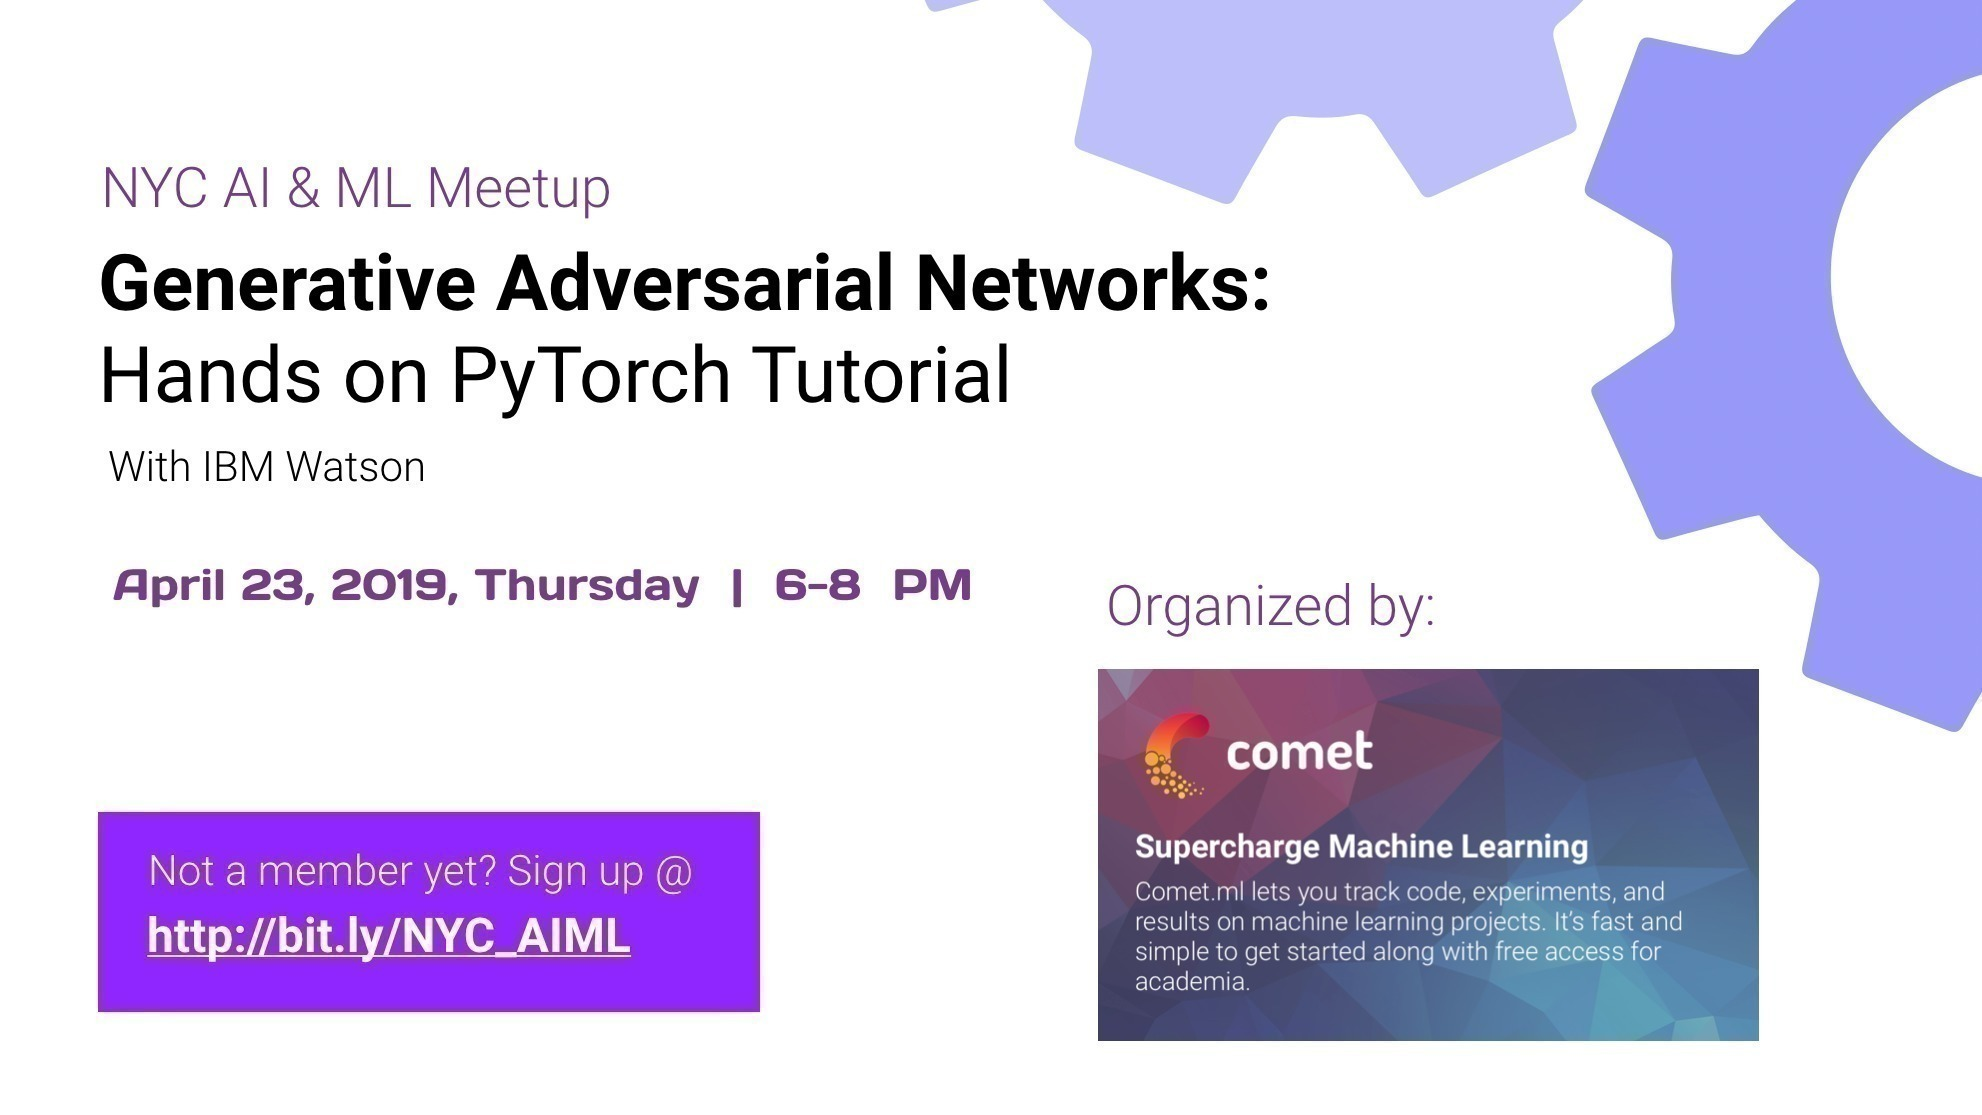 Generative Adversarial Networks — Hands-on PyTorch Tutorial